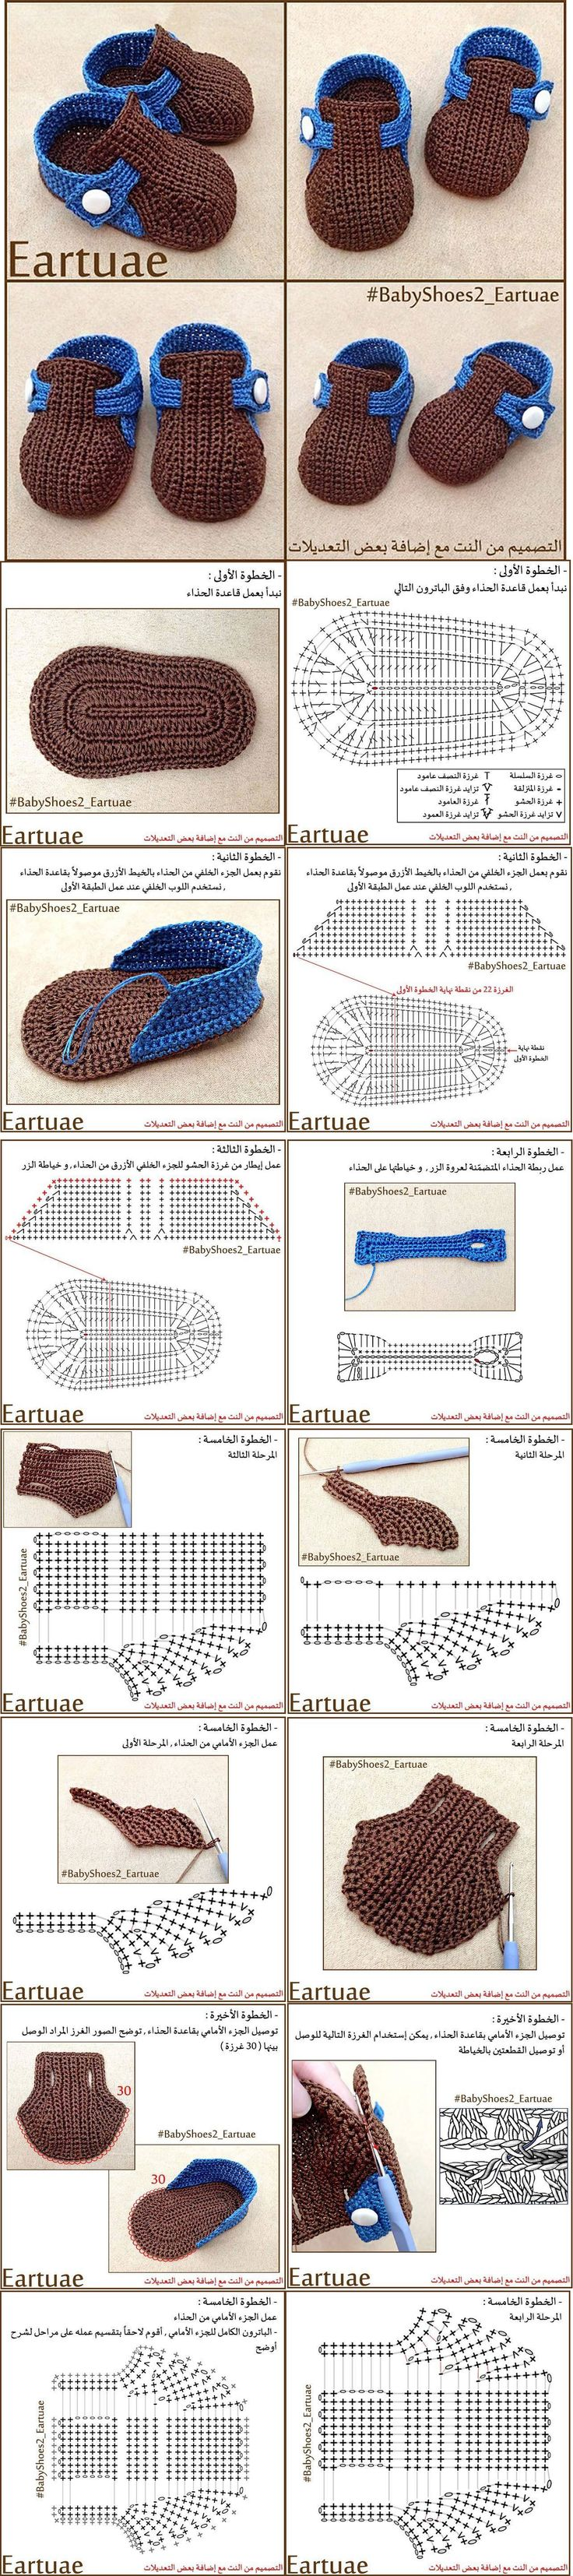 10 Tutorial Zapatos Bebé Crochet o Ganchillo